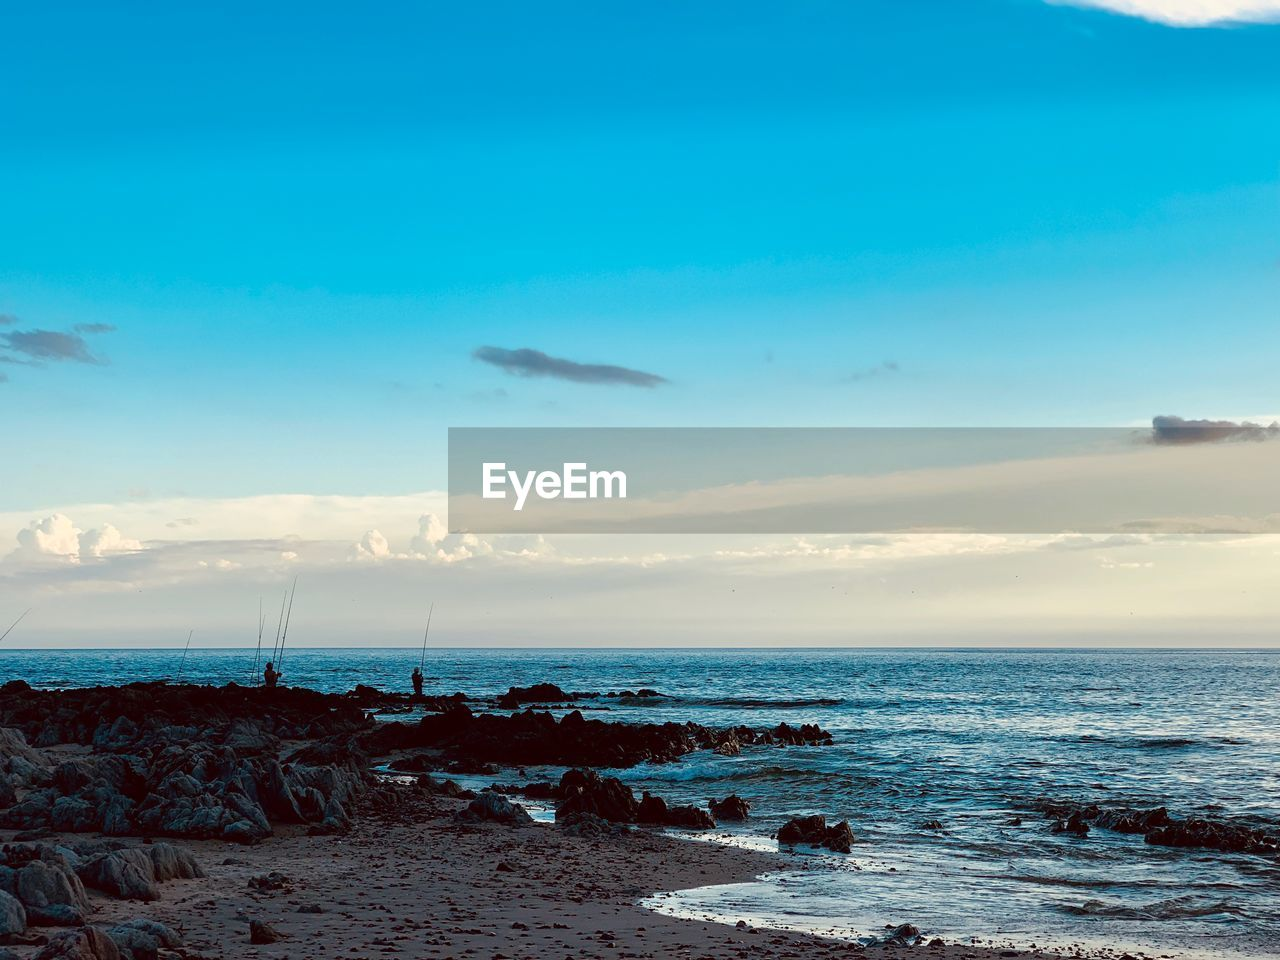 sea, sky, water, cloud - sky, horizon over water, scenics - nature, horizon, beauty in nature, tranquil scene, beach, tranquility, land, nature, no people, outdoors, blue, non-urban scene, day, idyllic